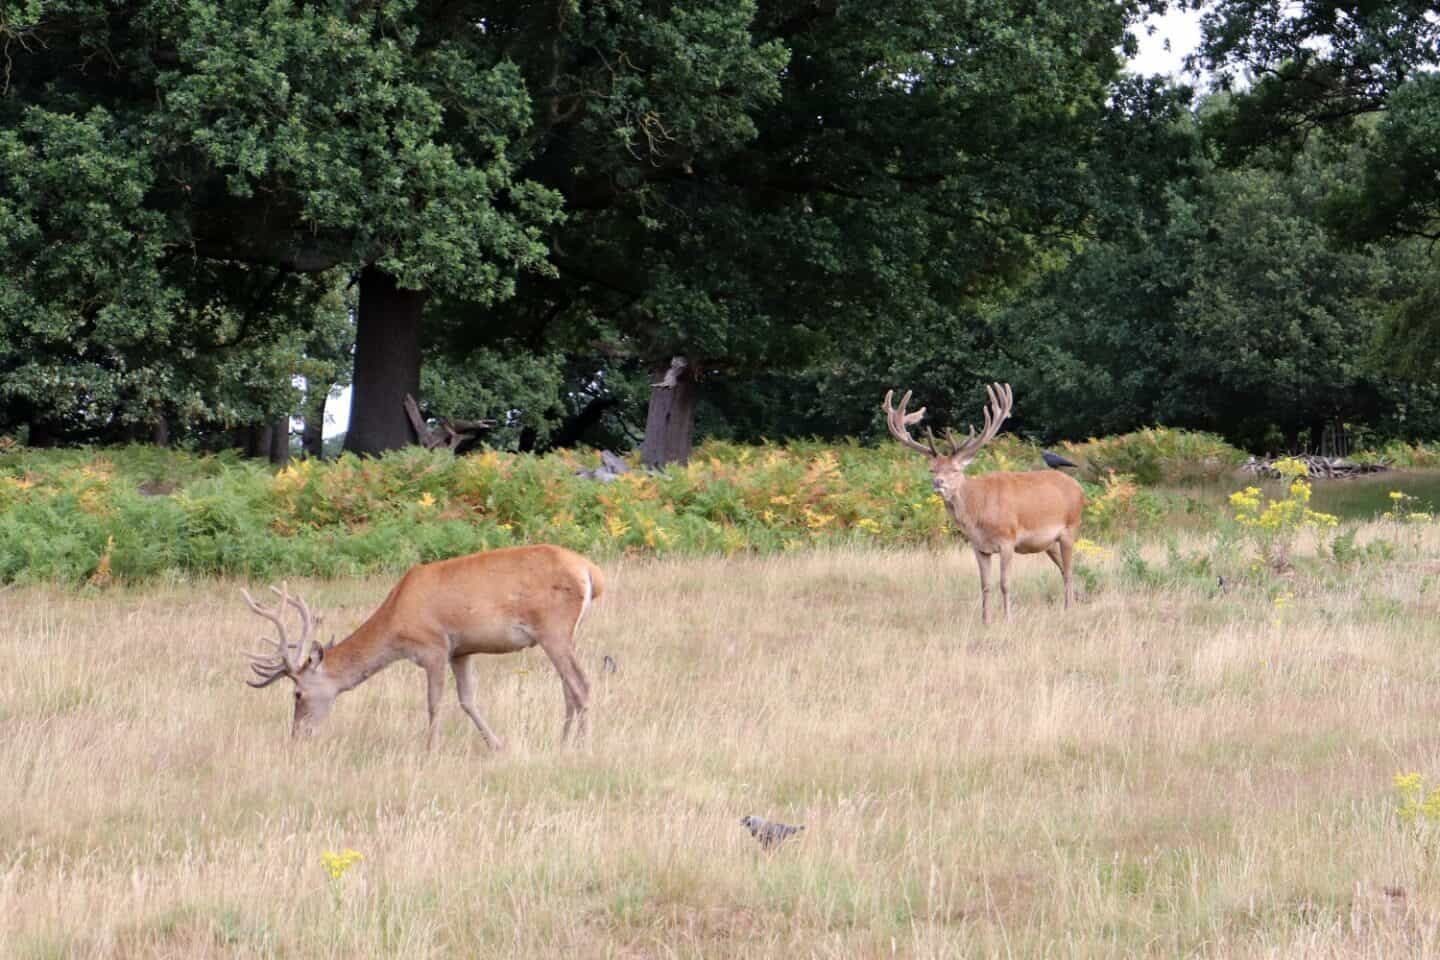 Two deer on Richmond Park, a great place to access nature in London